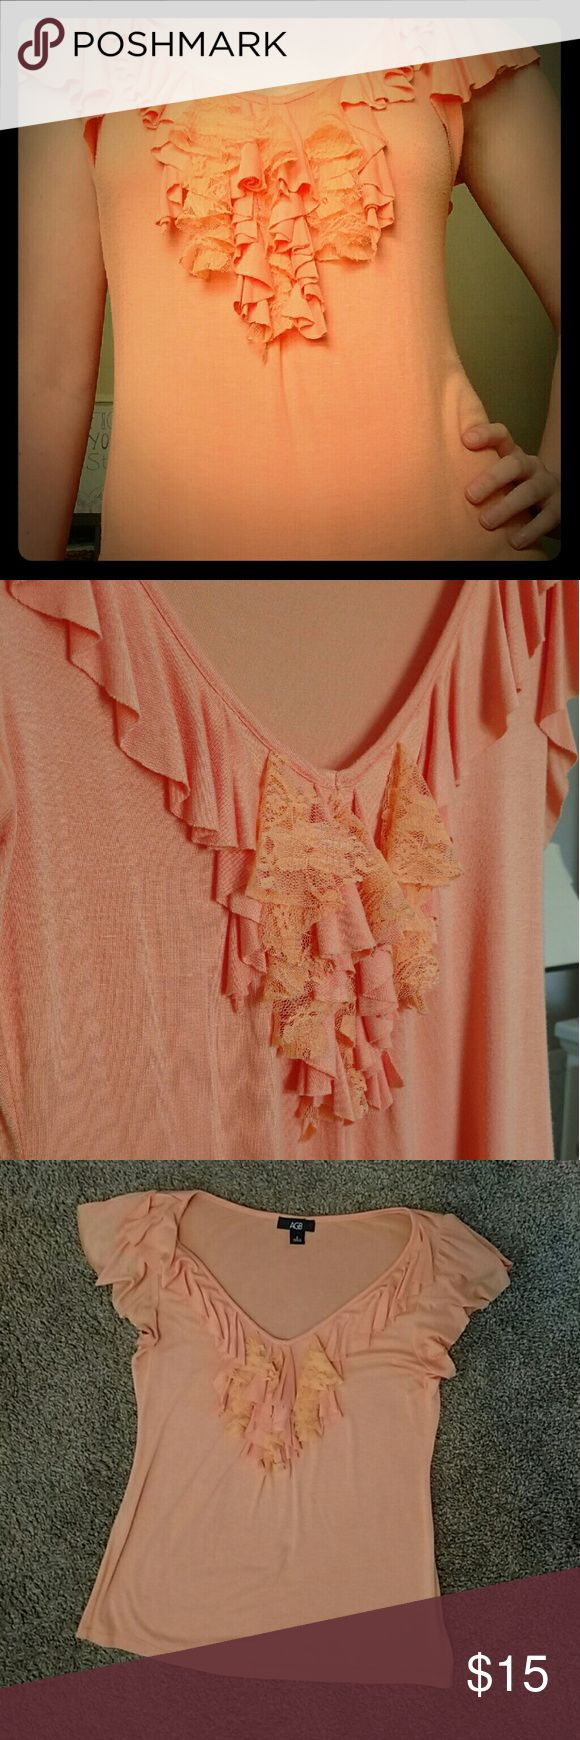 AGB Brand Ruffle Front Top This top is so feminine with its ruffles, loose sleeves, and soft peach color. Pair it with jeans and flats, or a blazer and nude heels for the office! 97% rayon and 3% spandex. Like new! AGB Tops Blouses